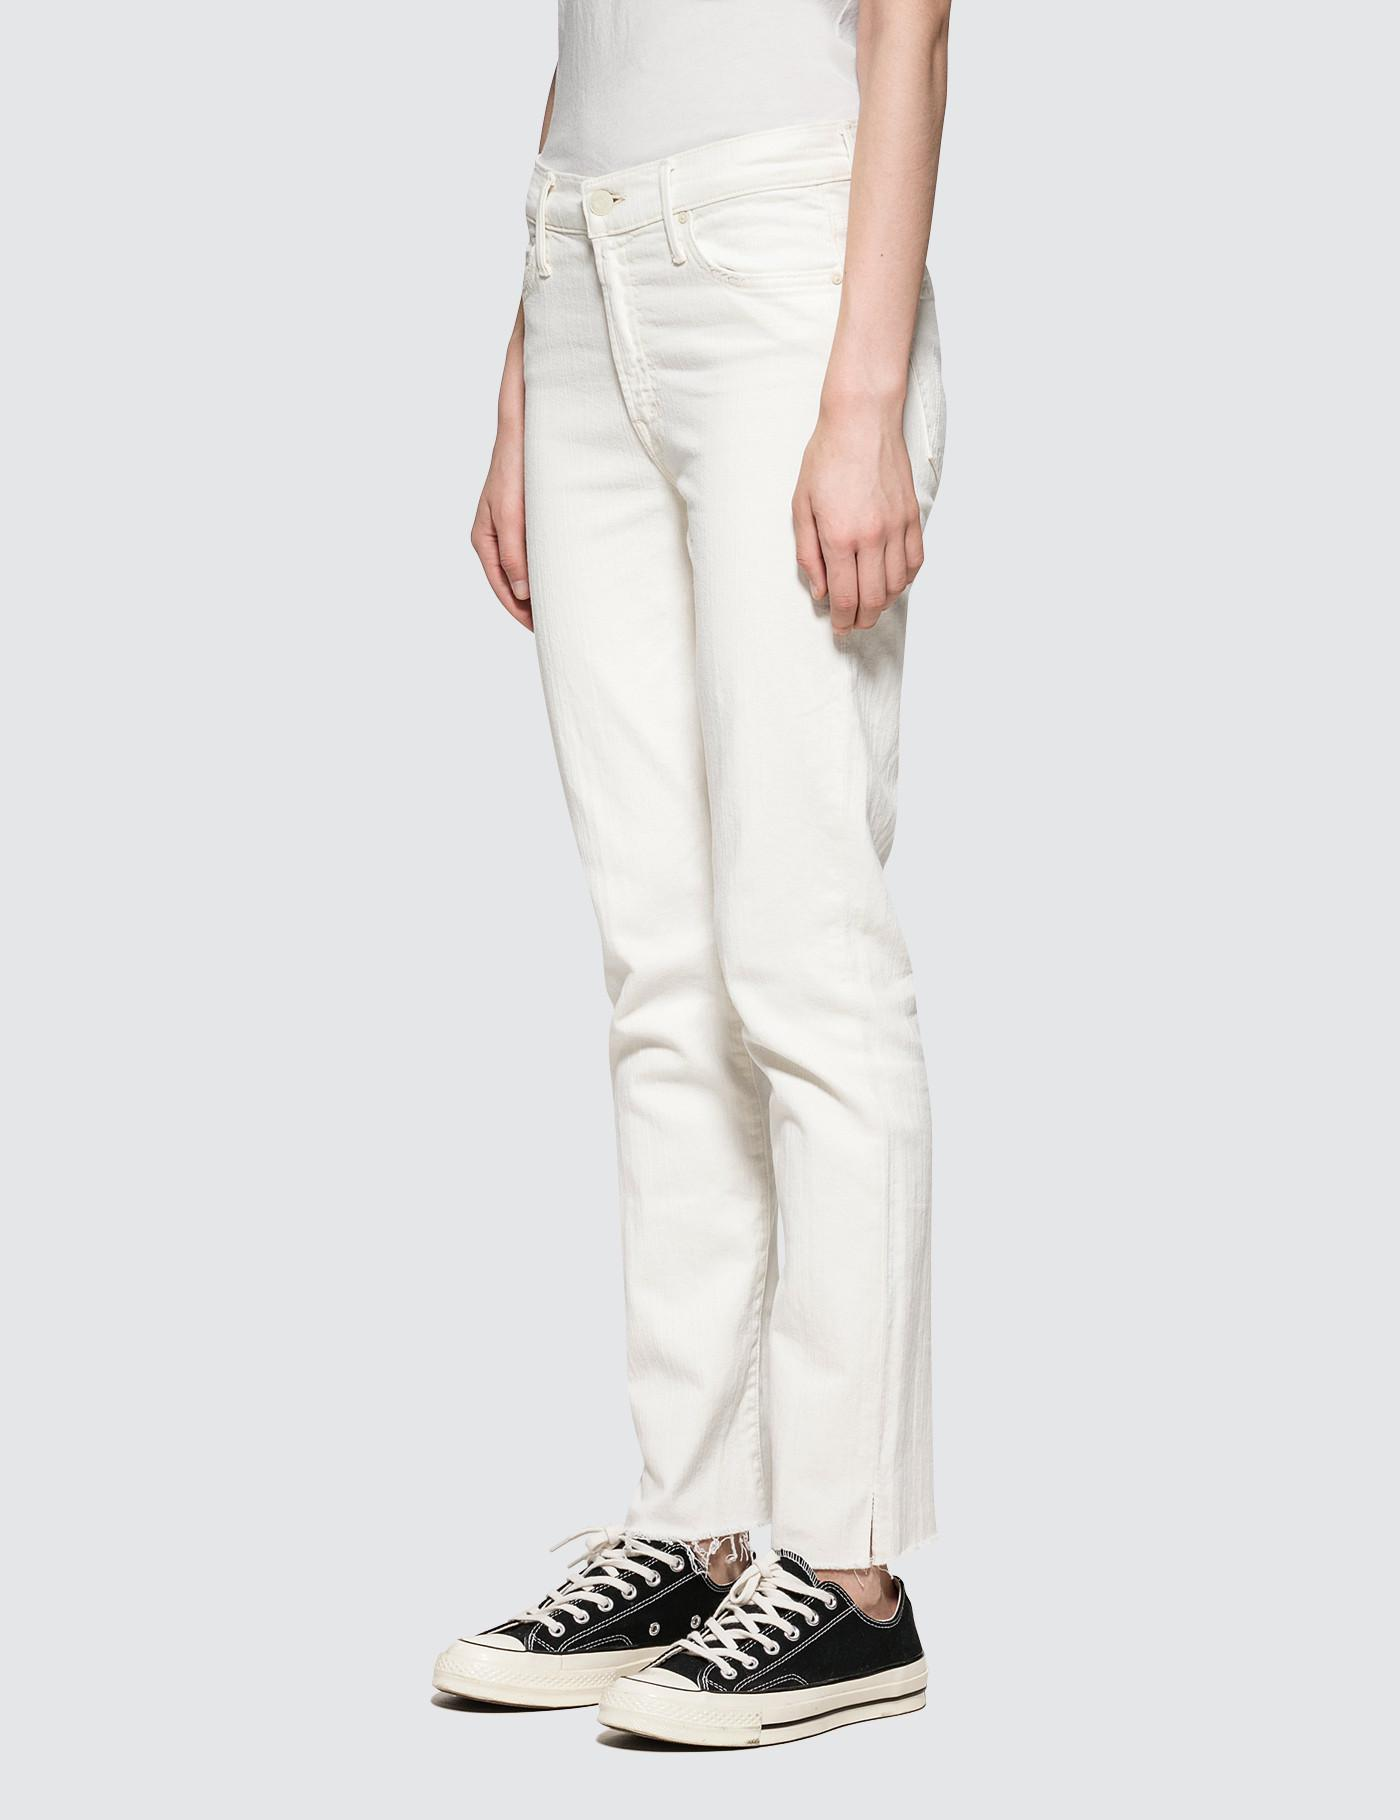 Mother Denim The Rascal Ankle Snippet Jeans in White